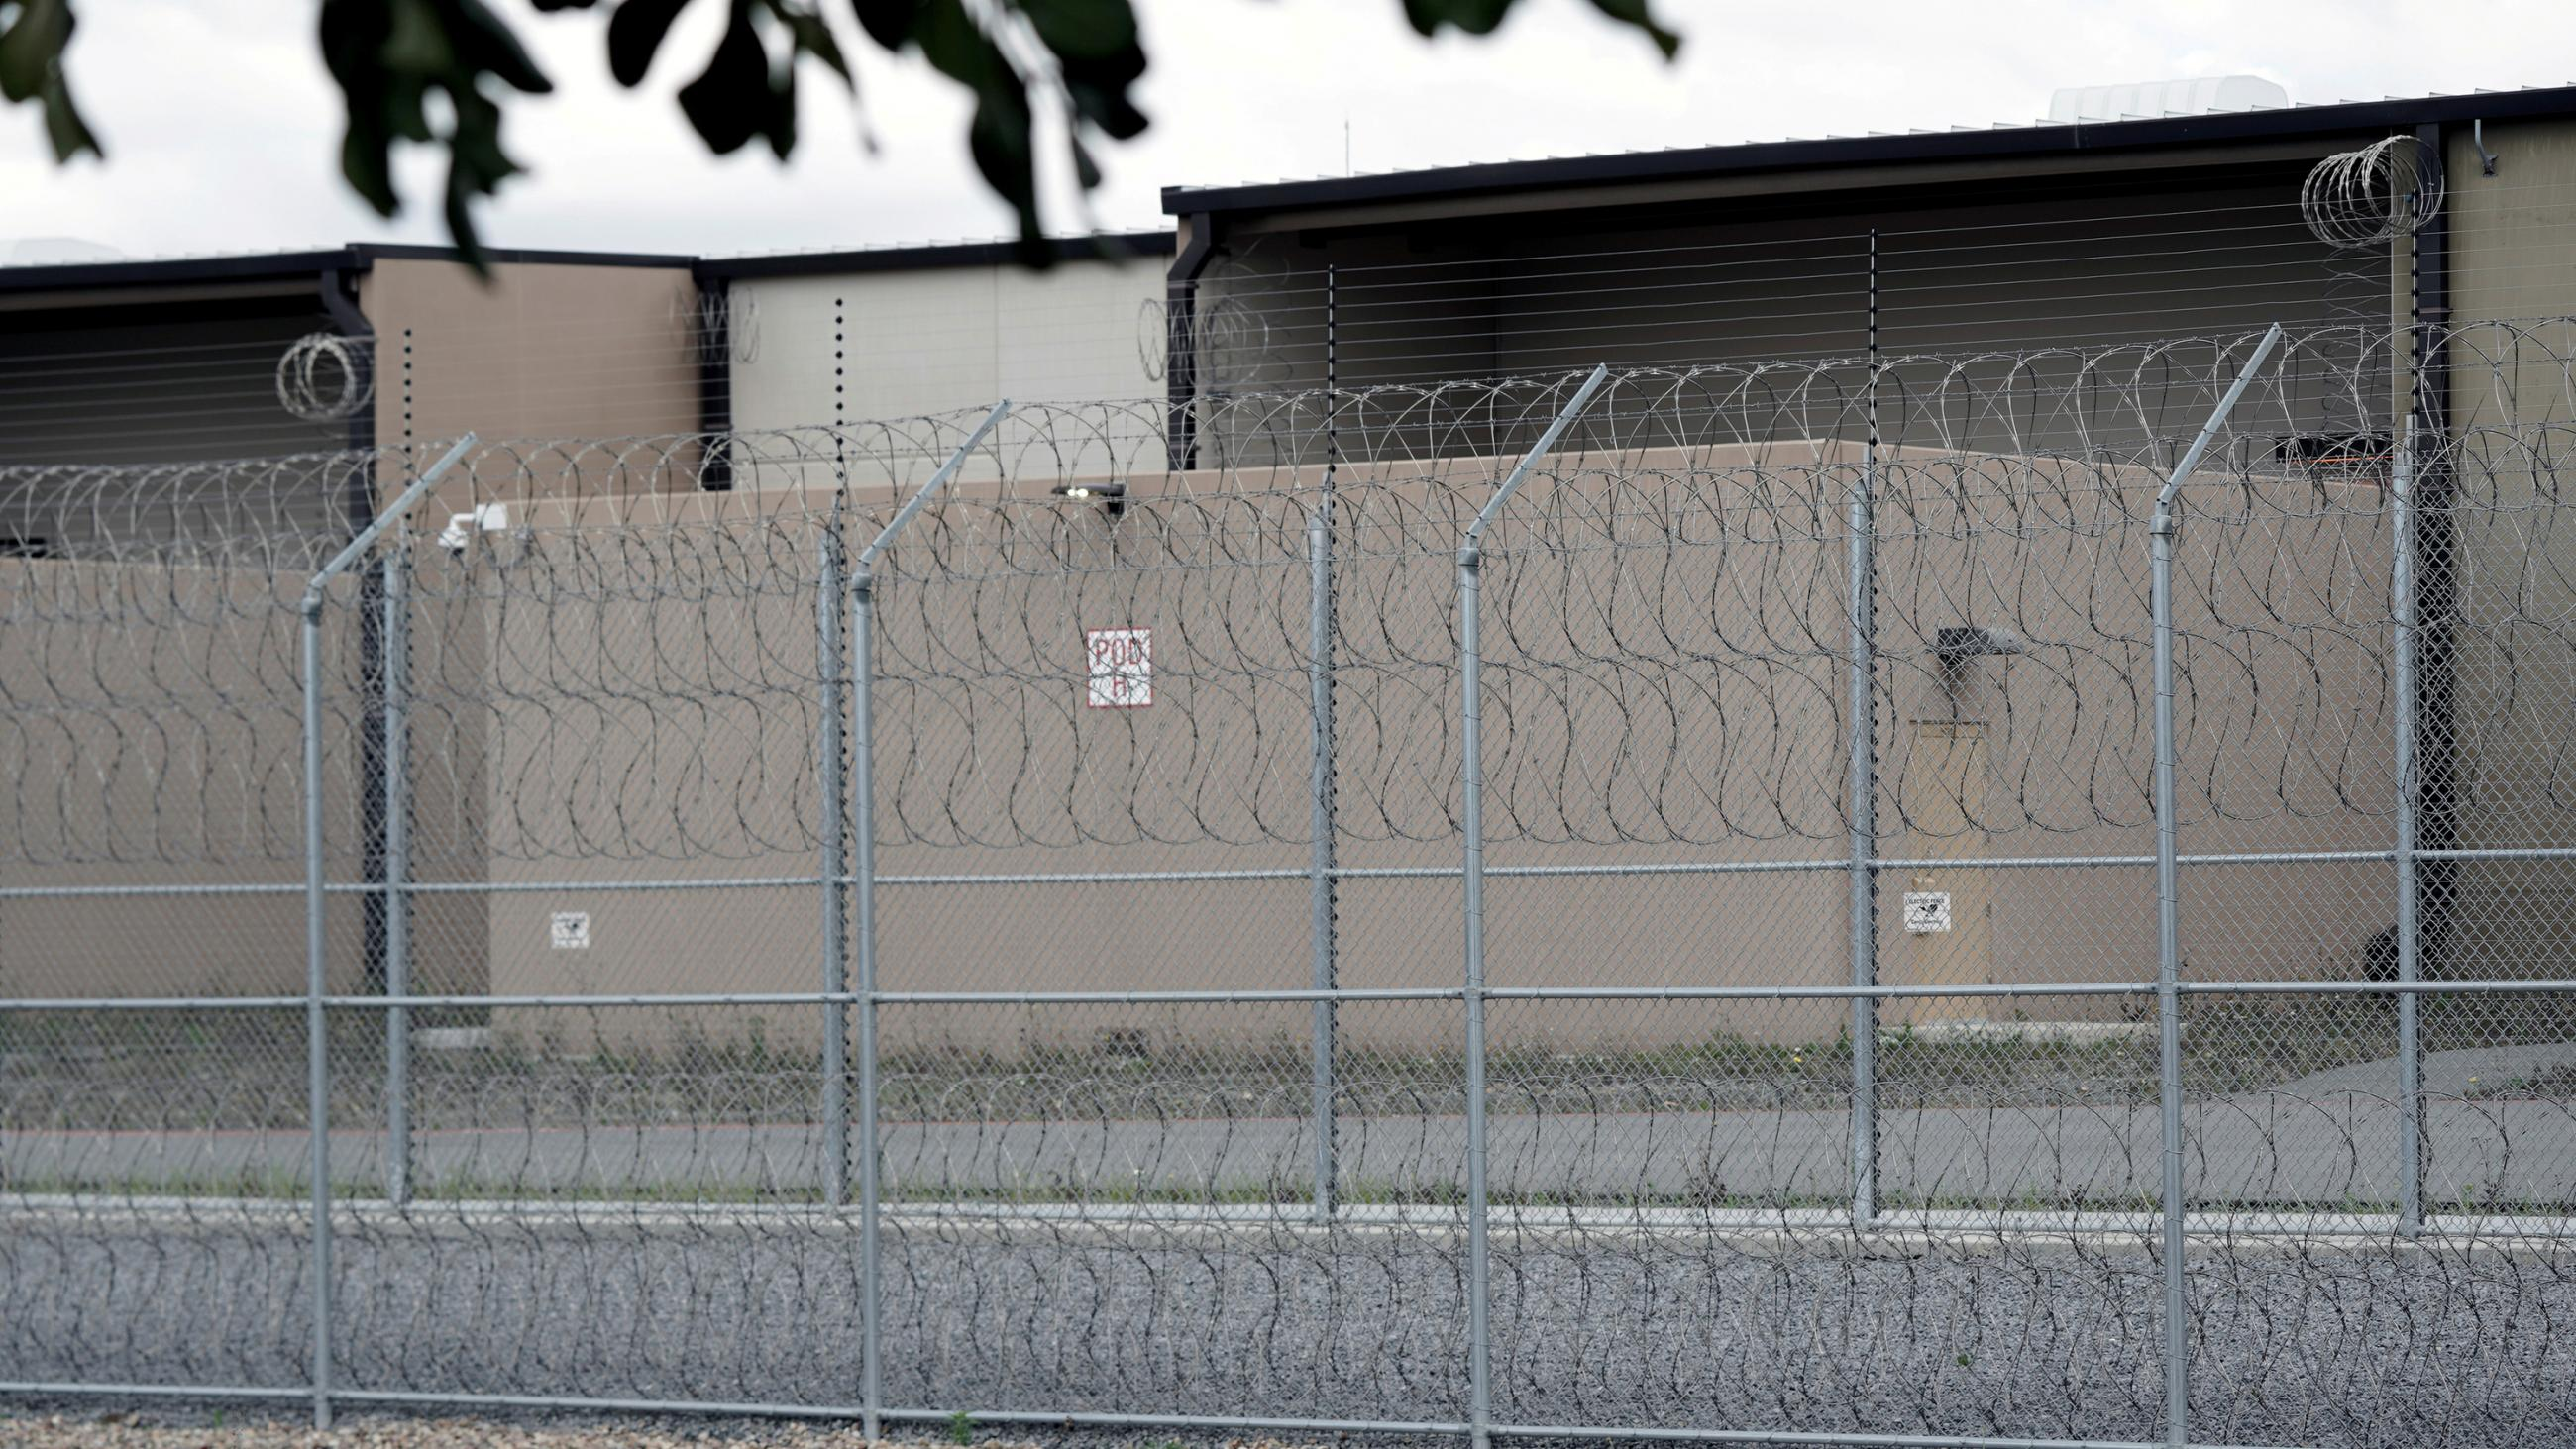 The photo shows a lockup from outside its perimeter barbed wire fence.